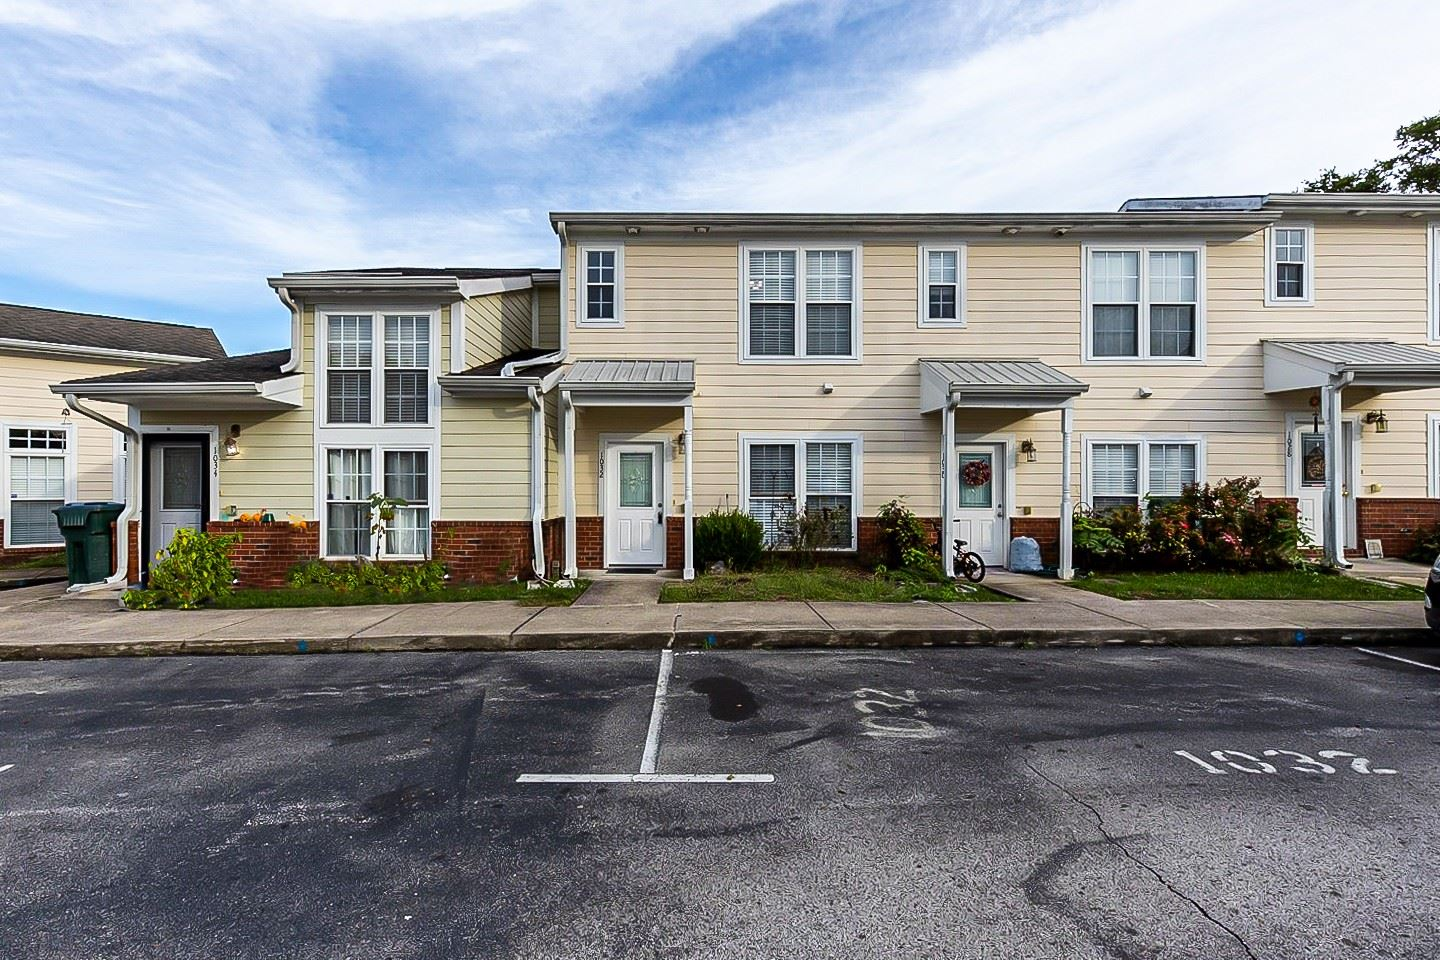 Photo of 1032 Wildwood Dr, Spring Hill, TN 37174 (MLS # 2295005)